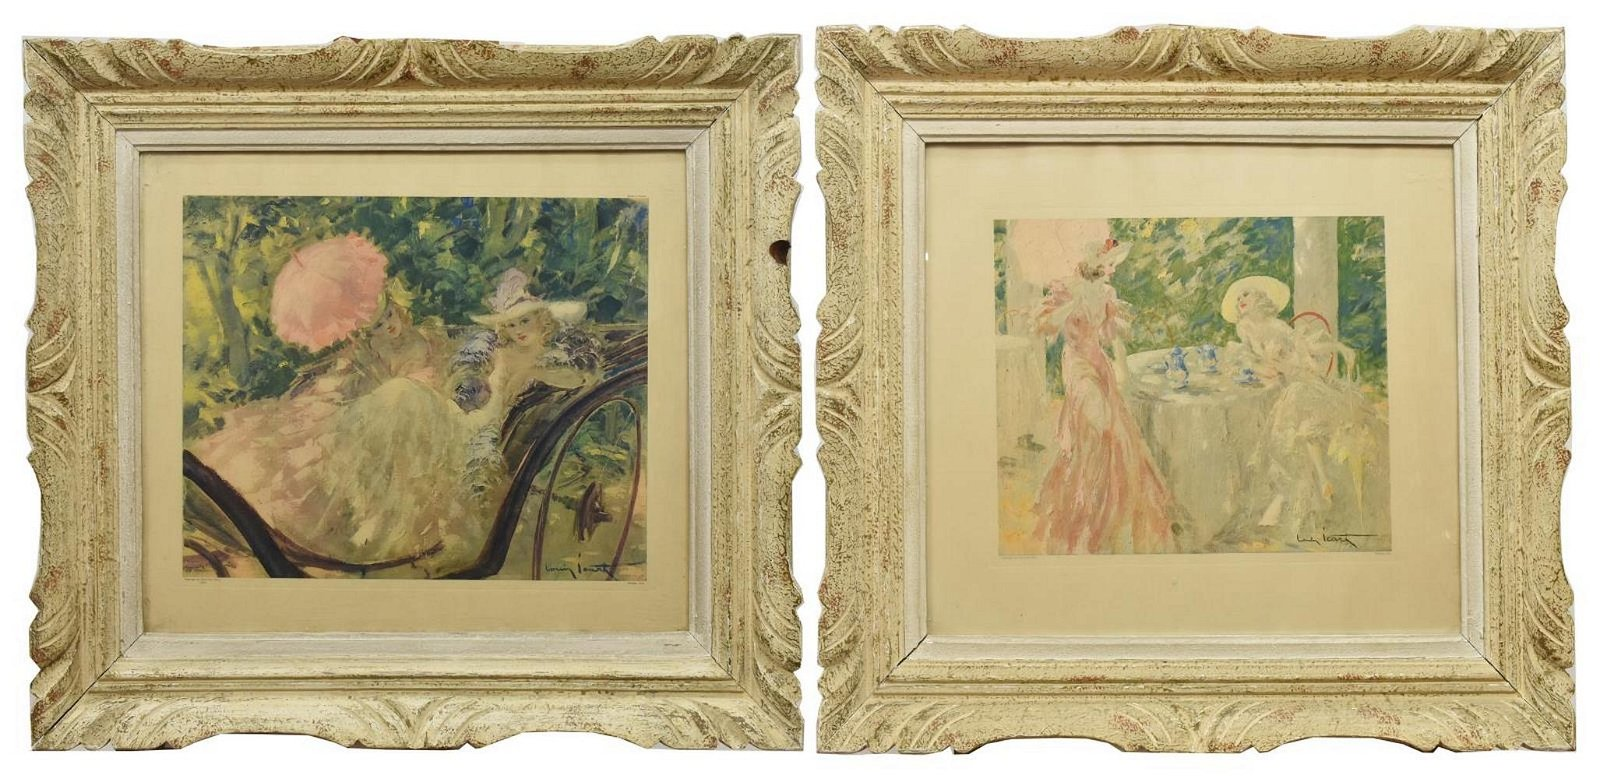 (2) FRAMED FRENCH PRINTS AFTER LOUIS ICART